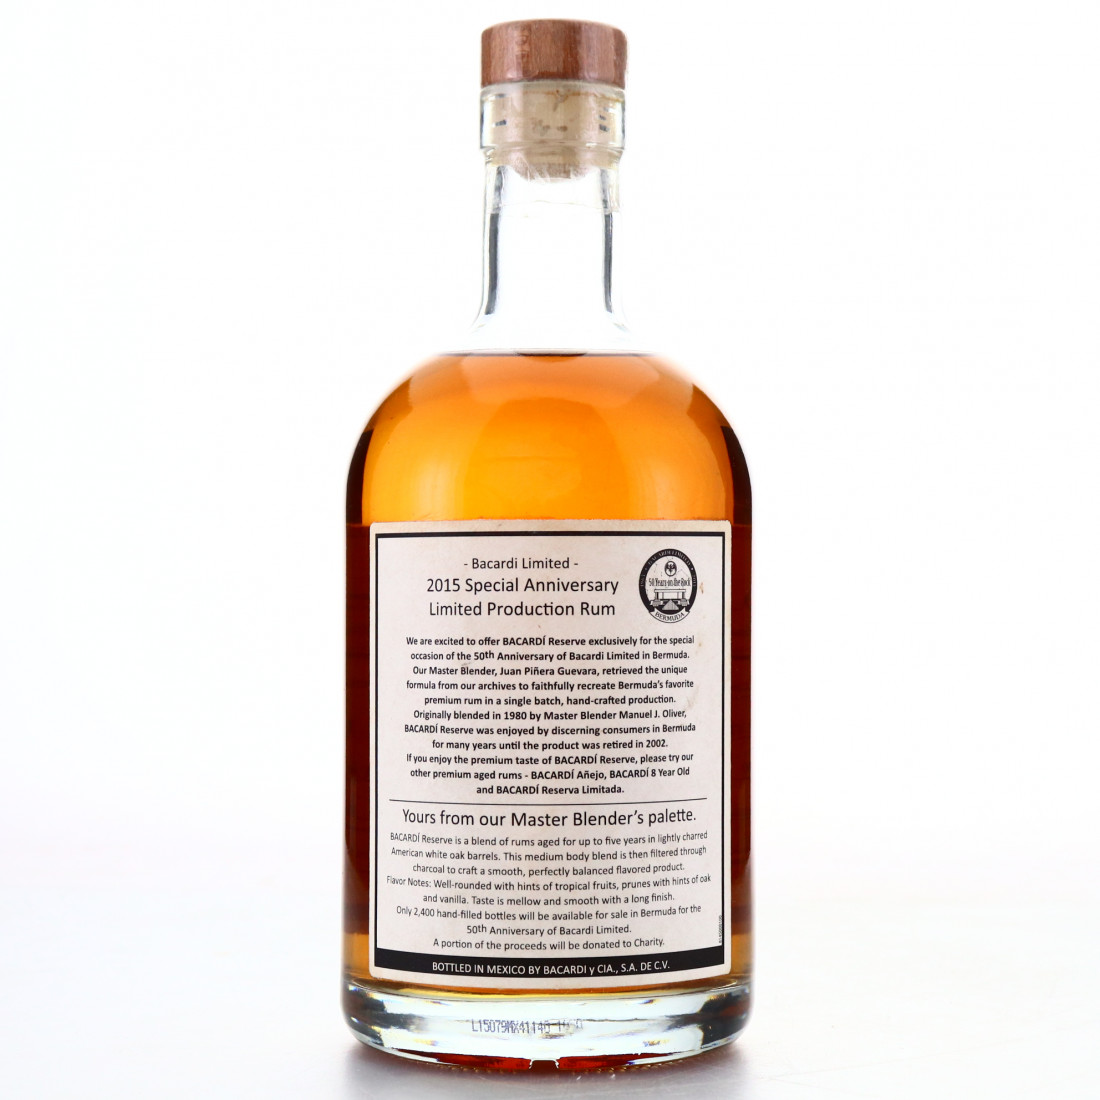 Bacardi Reserve 2015 Special Anniversary